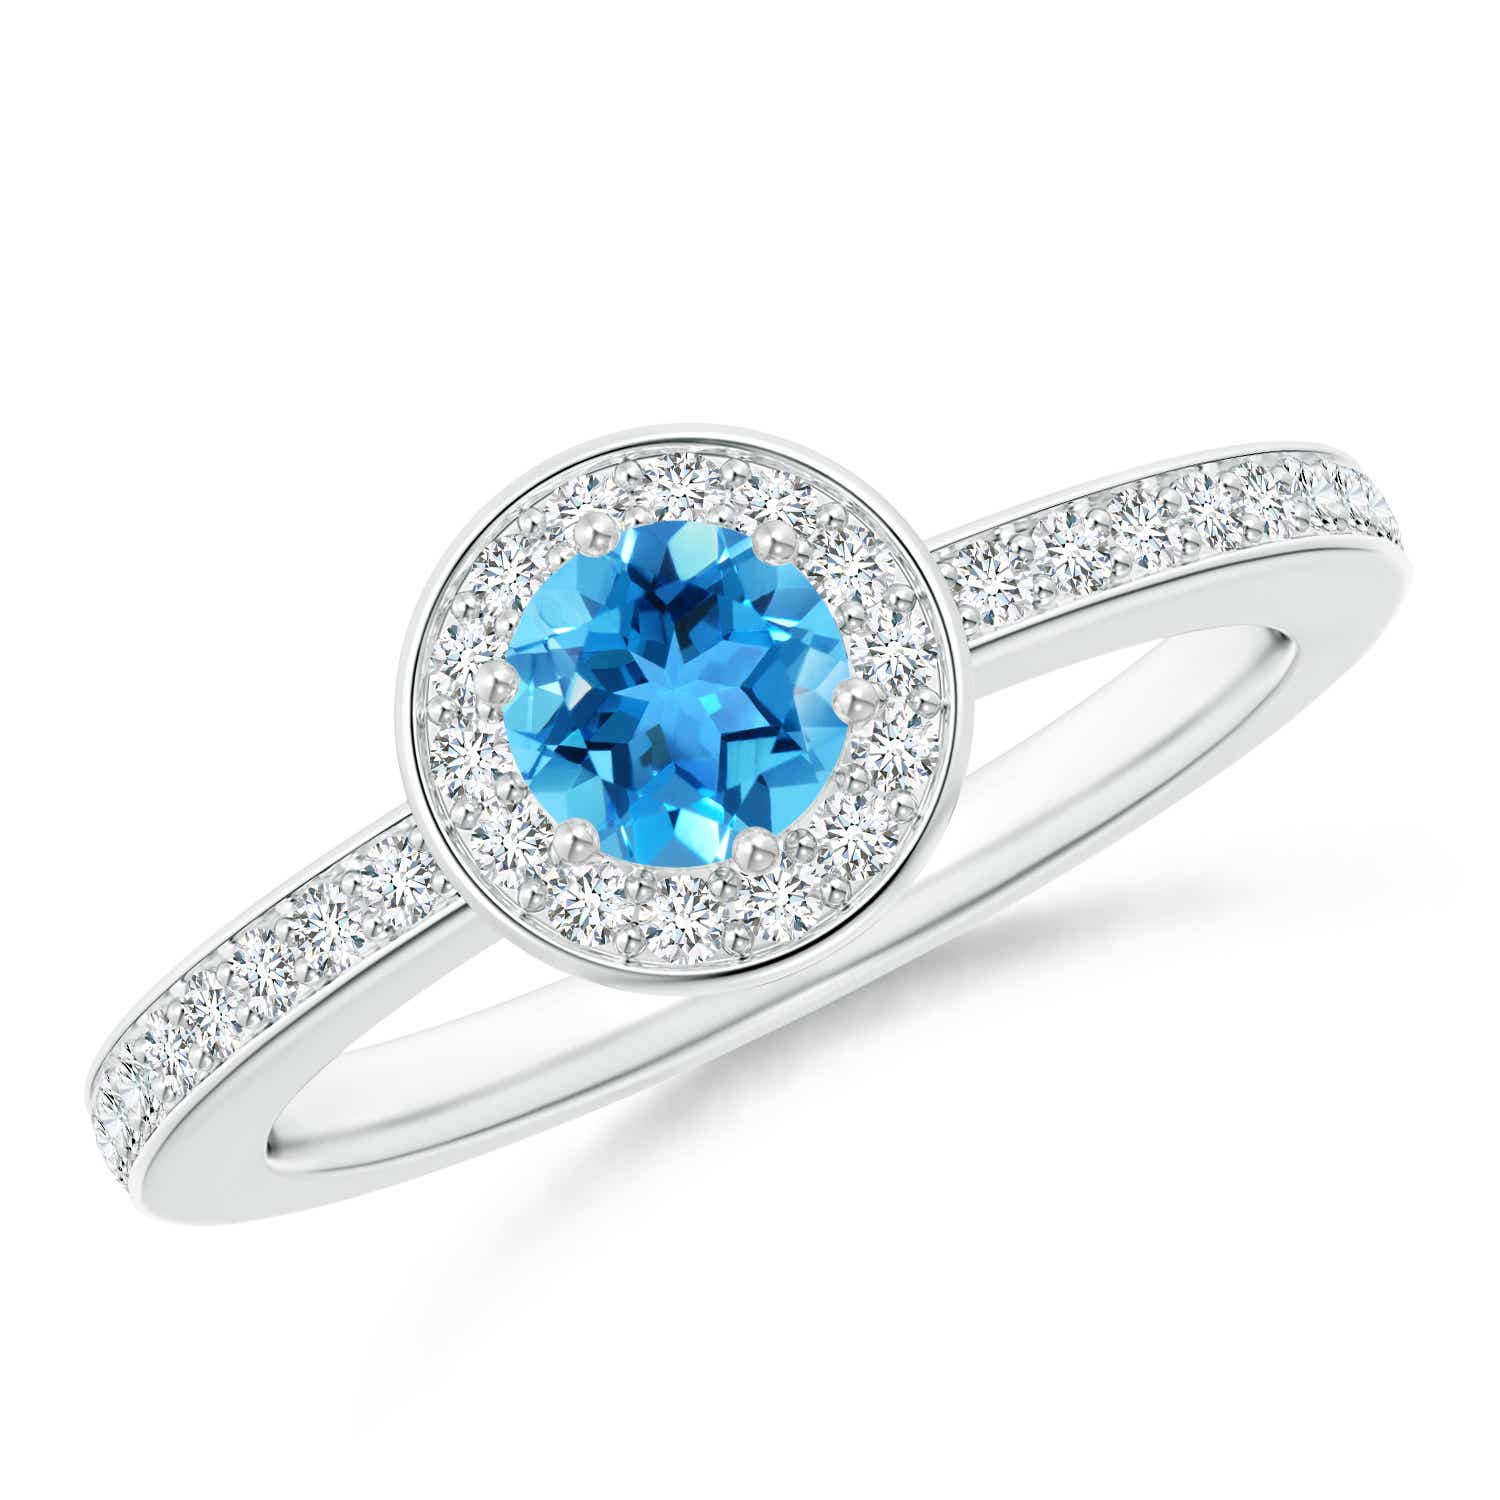 Angara Natural Swiss Blue Topaz Engagement Ring in White Gold DQMbh1Np7I